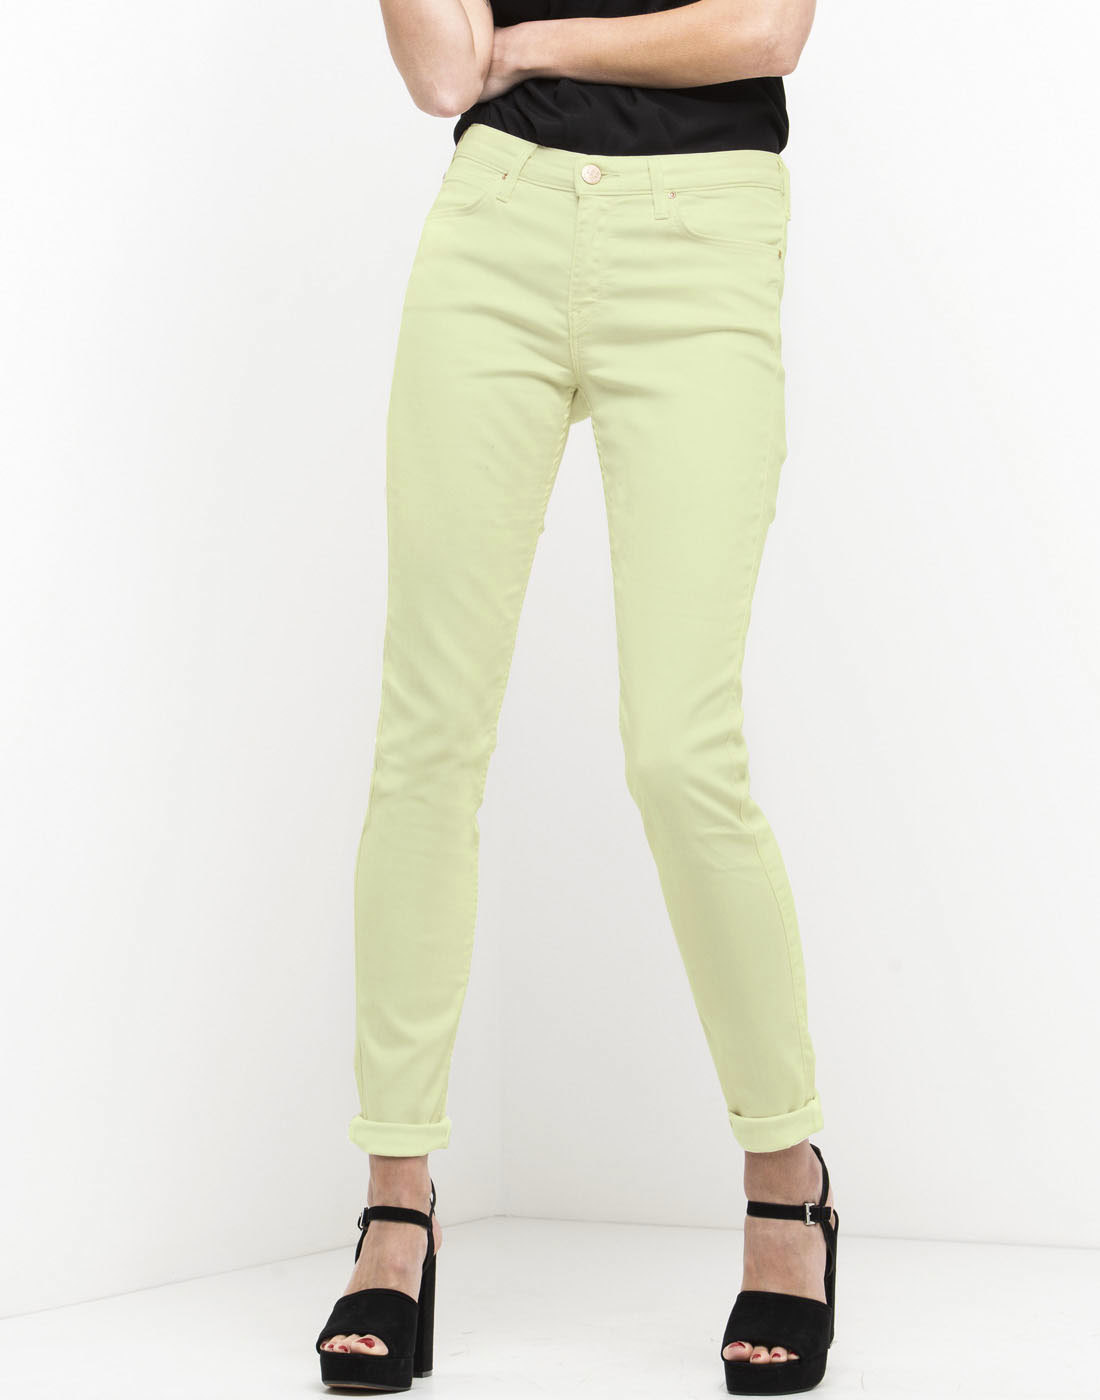 Jodee LEE Retro Super Skinny Denim Jeans LIME